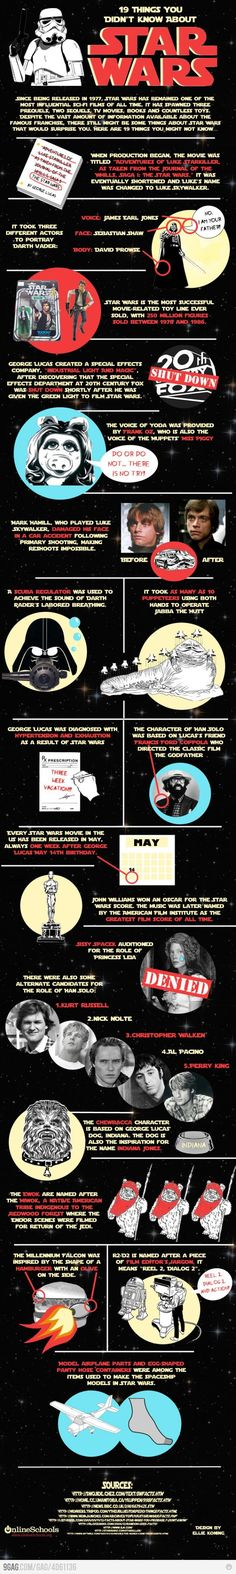 19 Things You Didn't Know About Star Wars